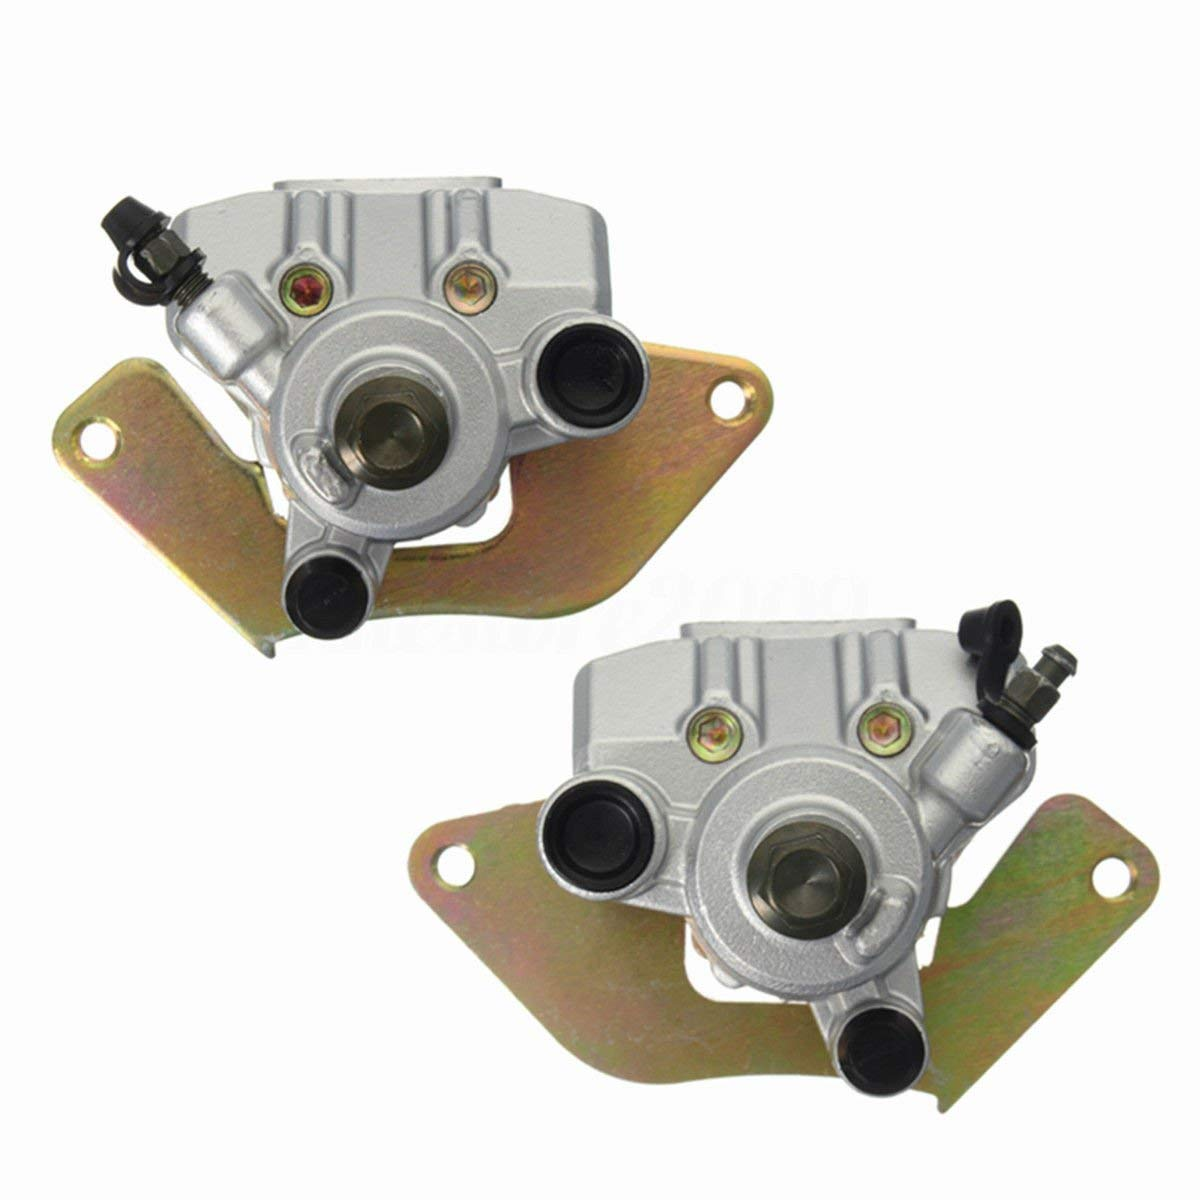 Front Brake Caliper Set (Left + Right) Fits Honda Rancher 420 TRX420 2007-2015 Foreman 500 TRX500 2012 2013 2014 2015 by Amhousejoy RUIAN HAOCHENG VEHICLE PARTS